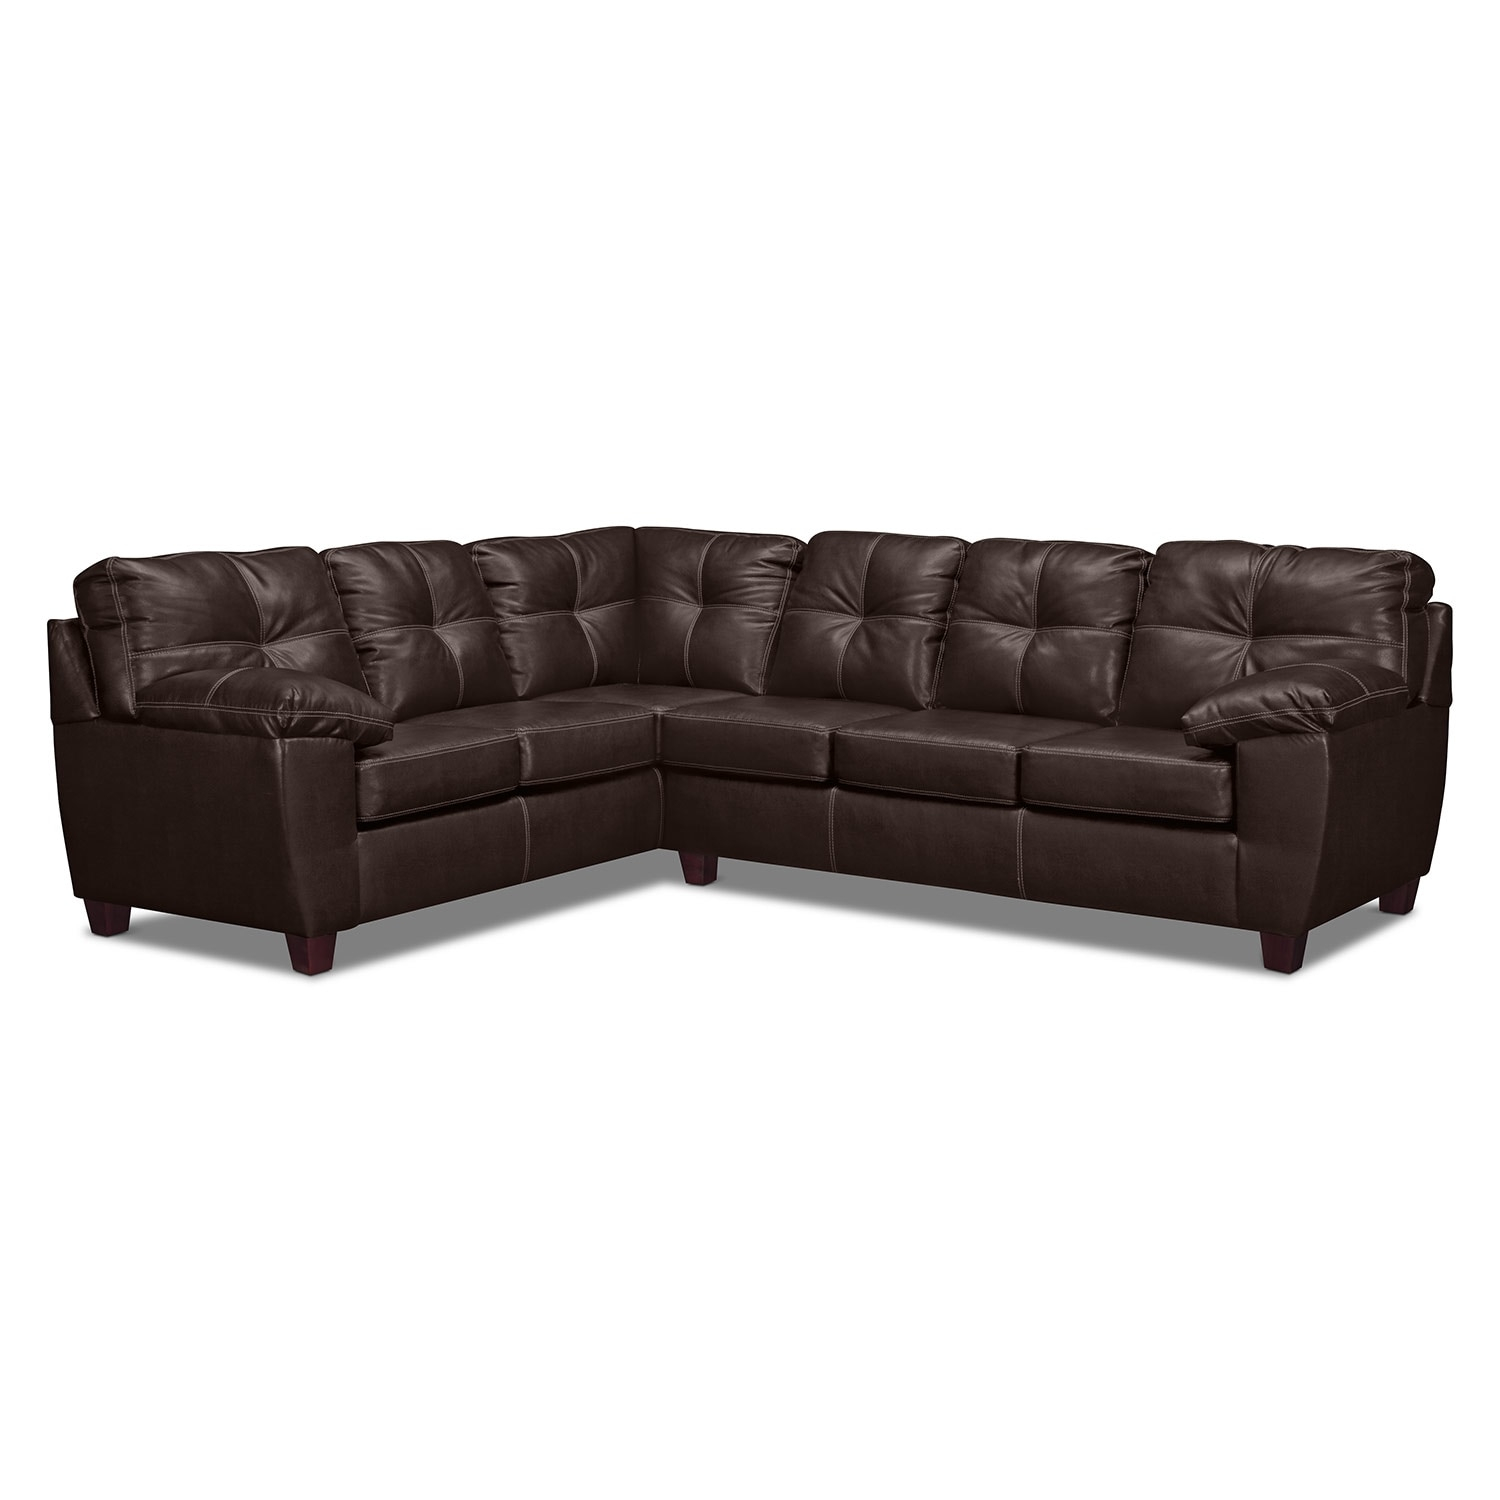 Living Room Furniture - Ricardo 2-Piece Sectional